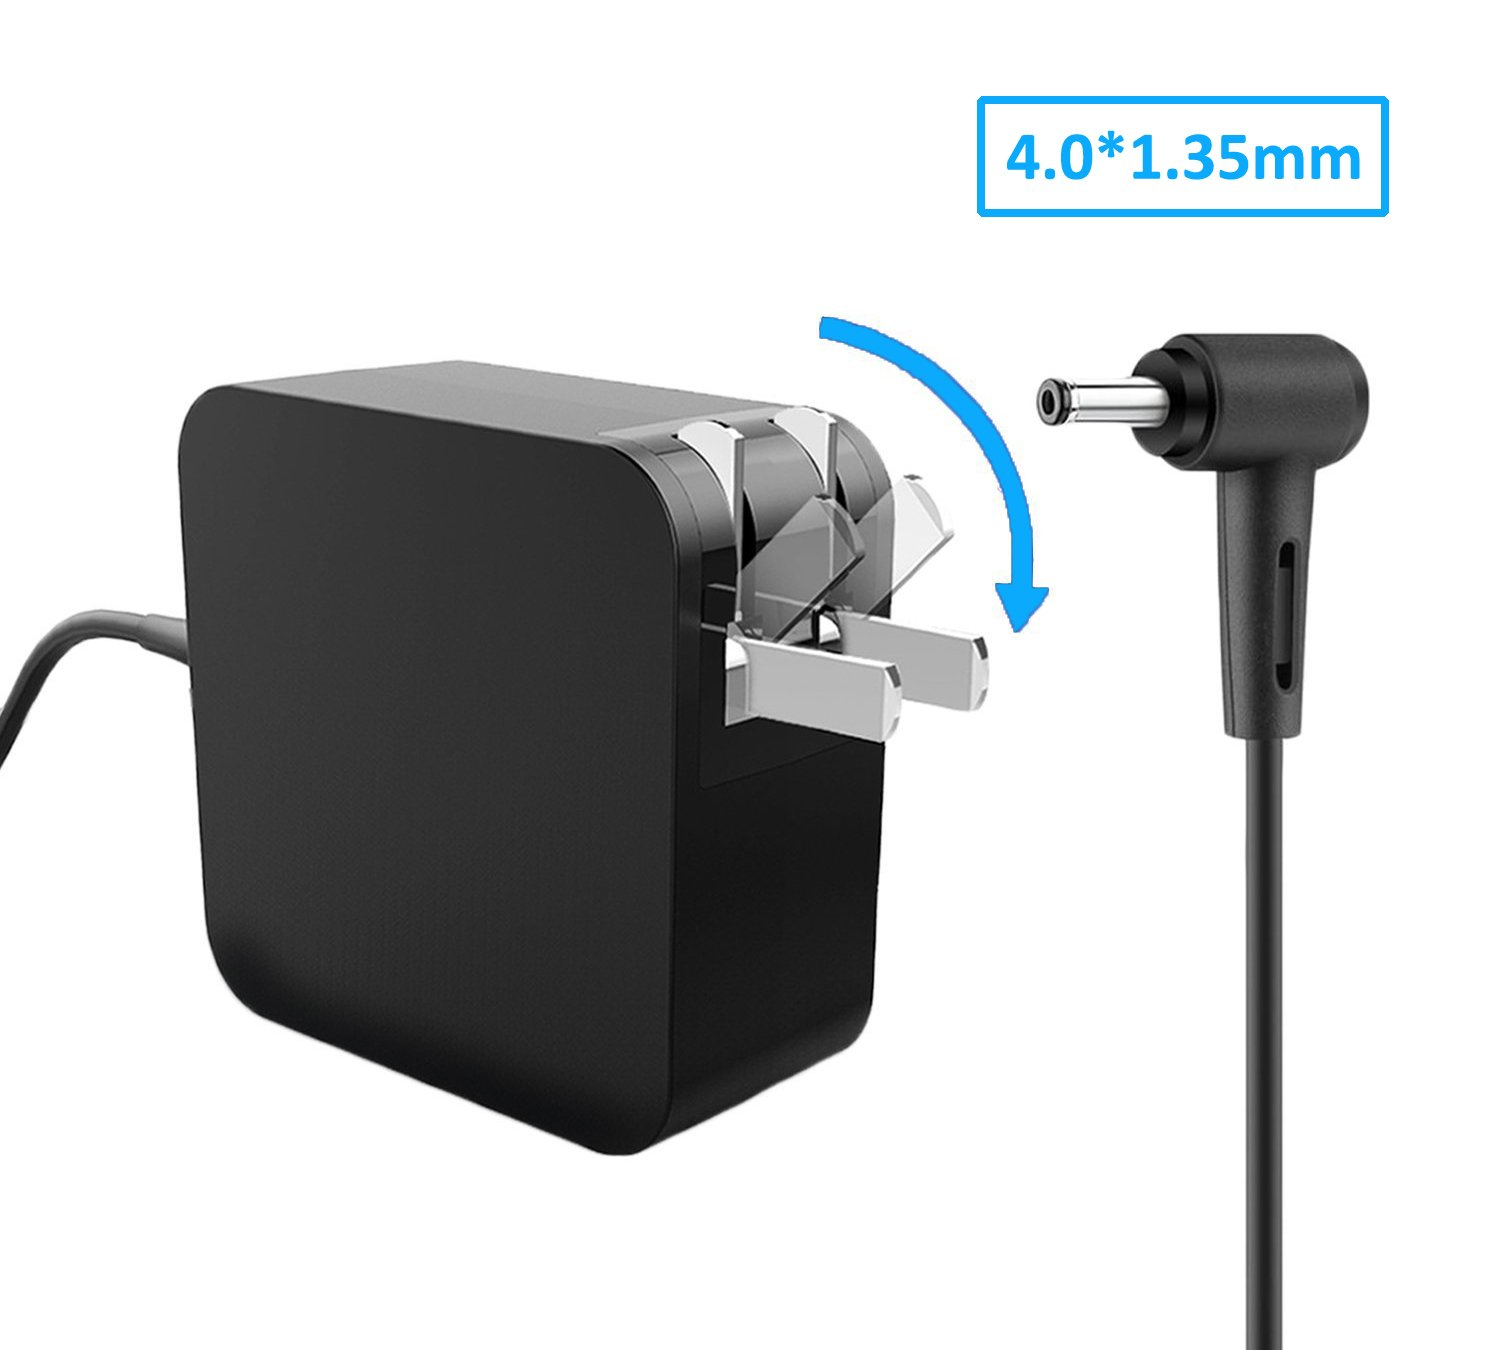 Portable Laptop Power AC Adapter 19V 2.37A 45W Charger for Asus Zenbook Prime UX330 UX330U UX330UA UX330C Asus Power Supply